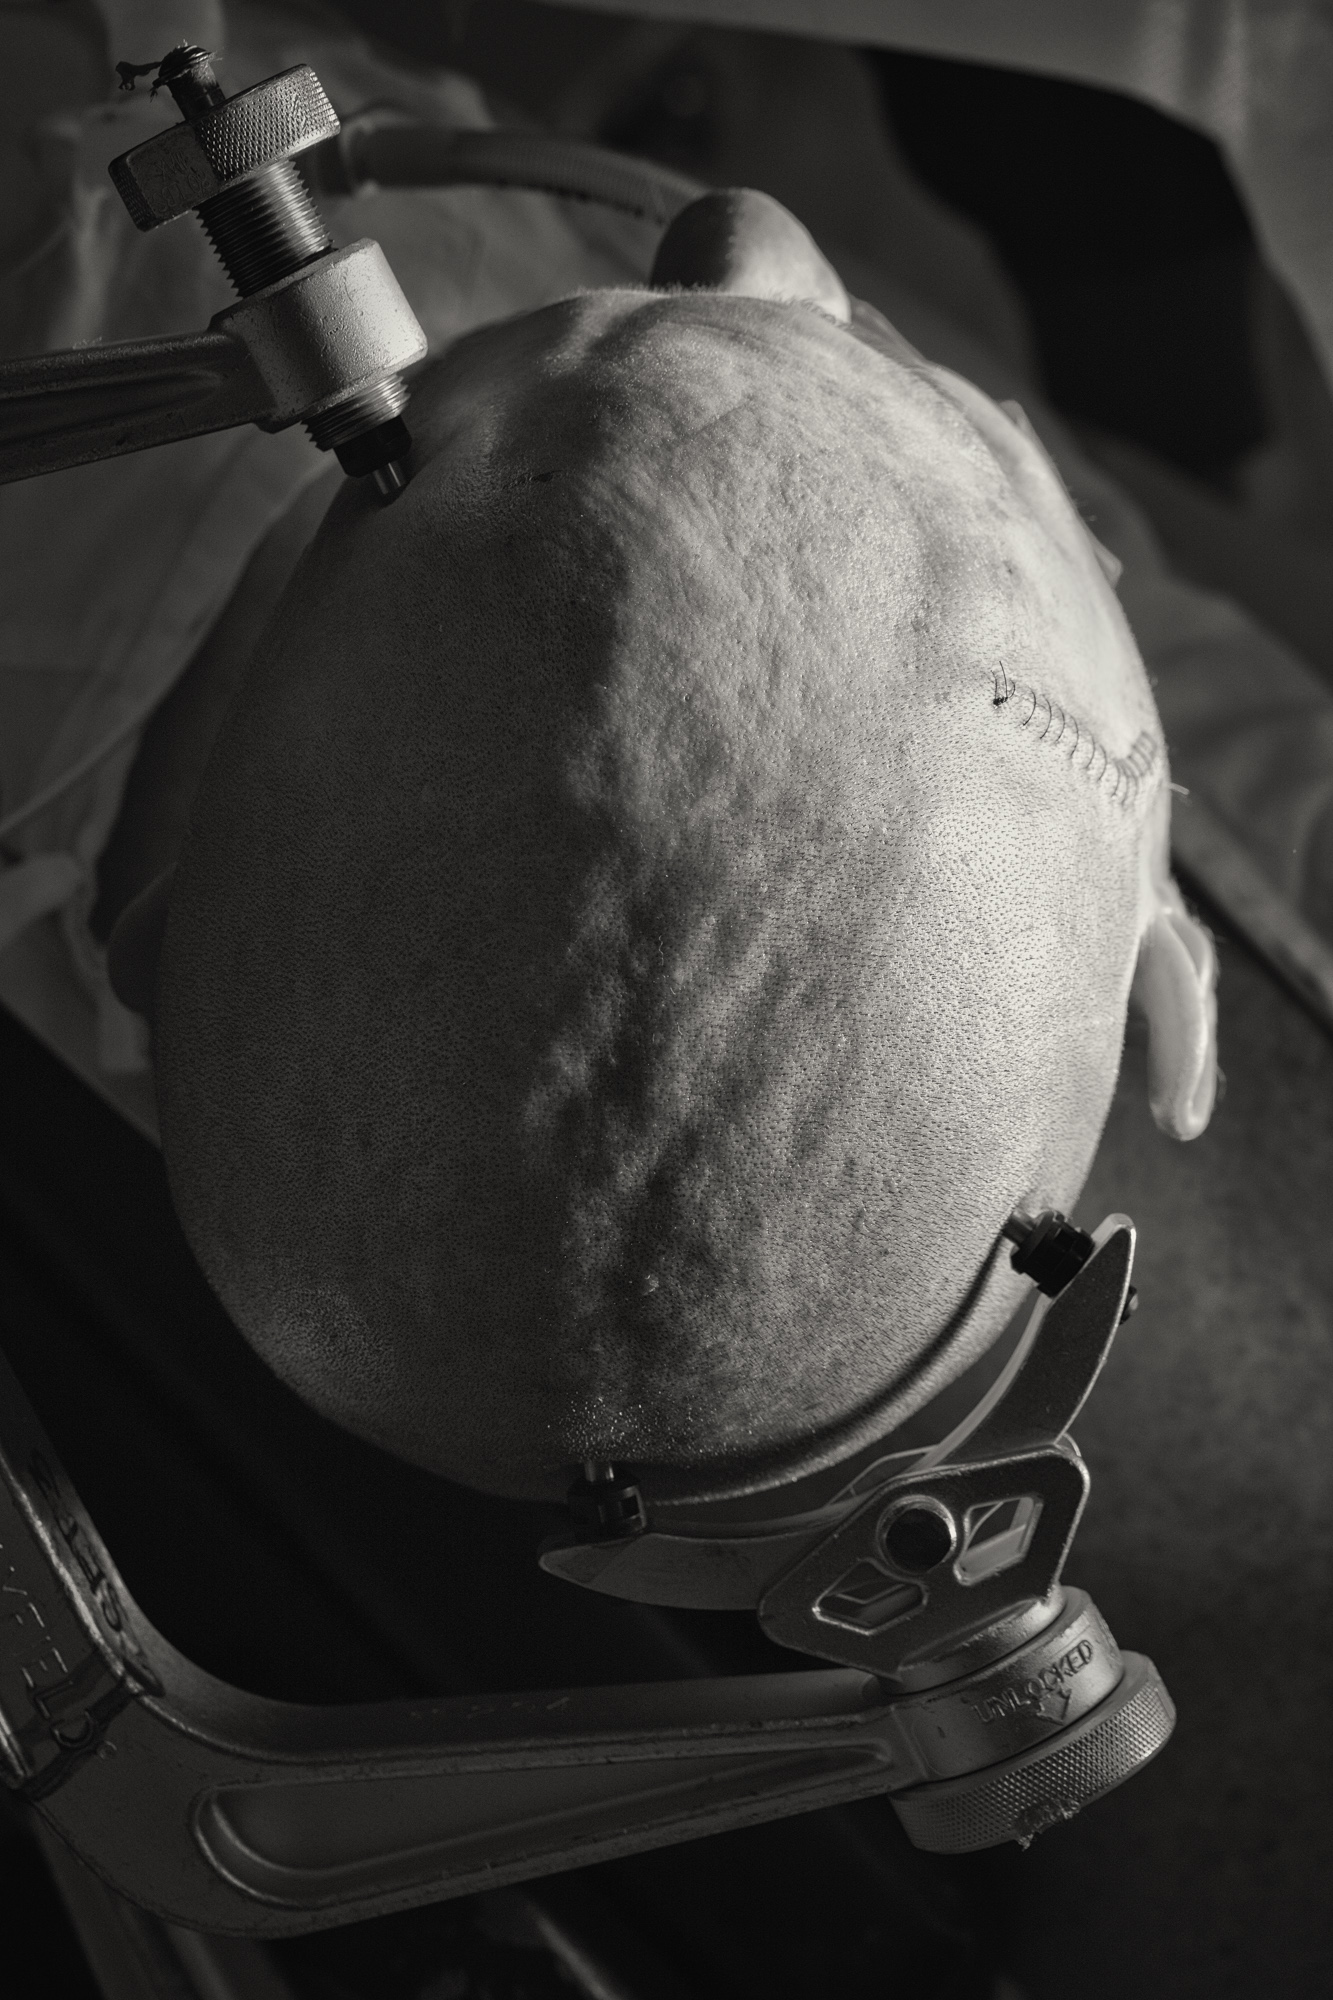 The patients head is clamped still with 3 spiked metal points for 3 hours while the golf-ball sized tumour is removed by world renown Neurosurgeon, Dr Charlie Teo. After the final stich is tied, the clamp is removed and replaced with a cushioned head-rest moments before the patient regains consciousness.